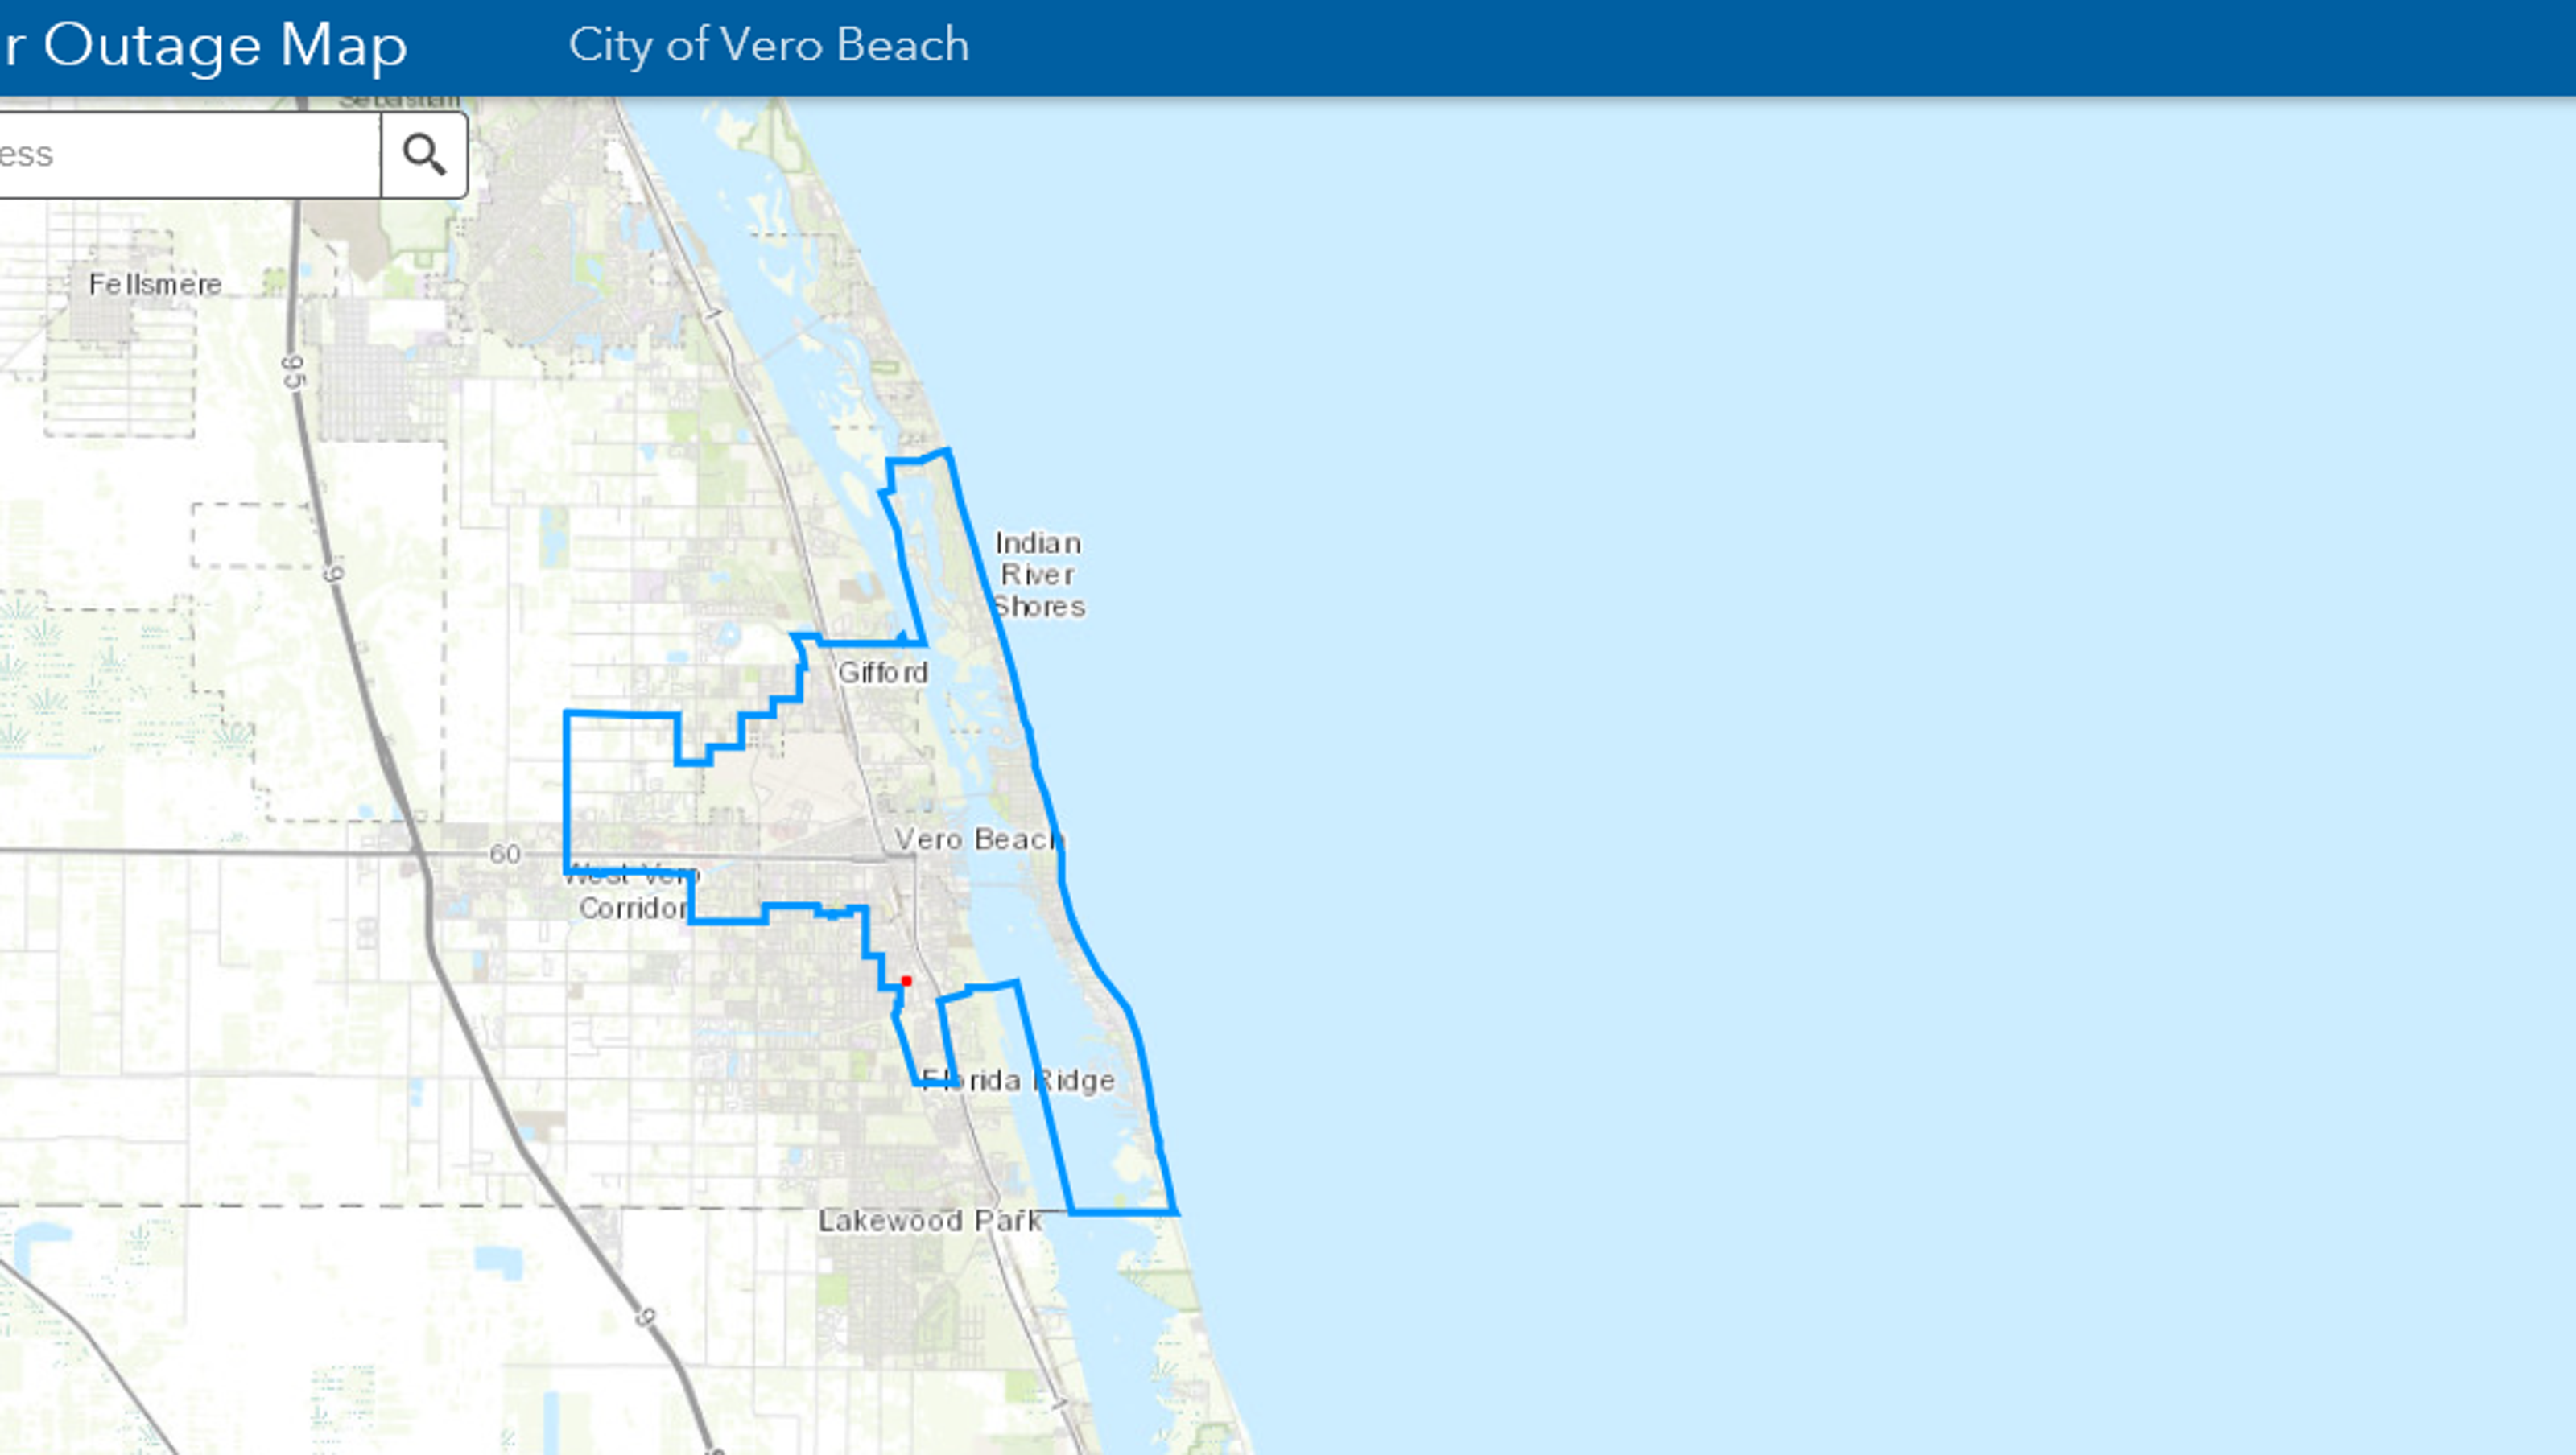 Street Map Of Vero Beach Florida.Vero Beach Electric Customers Can Now Find Power Outages Online